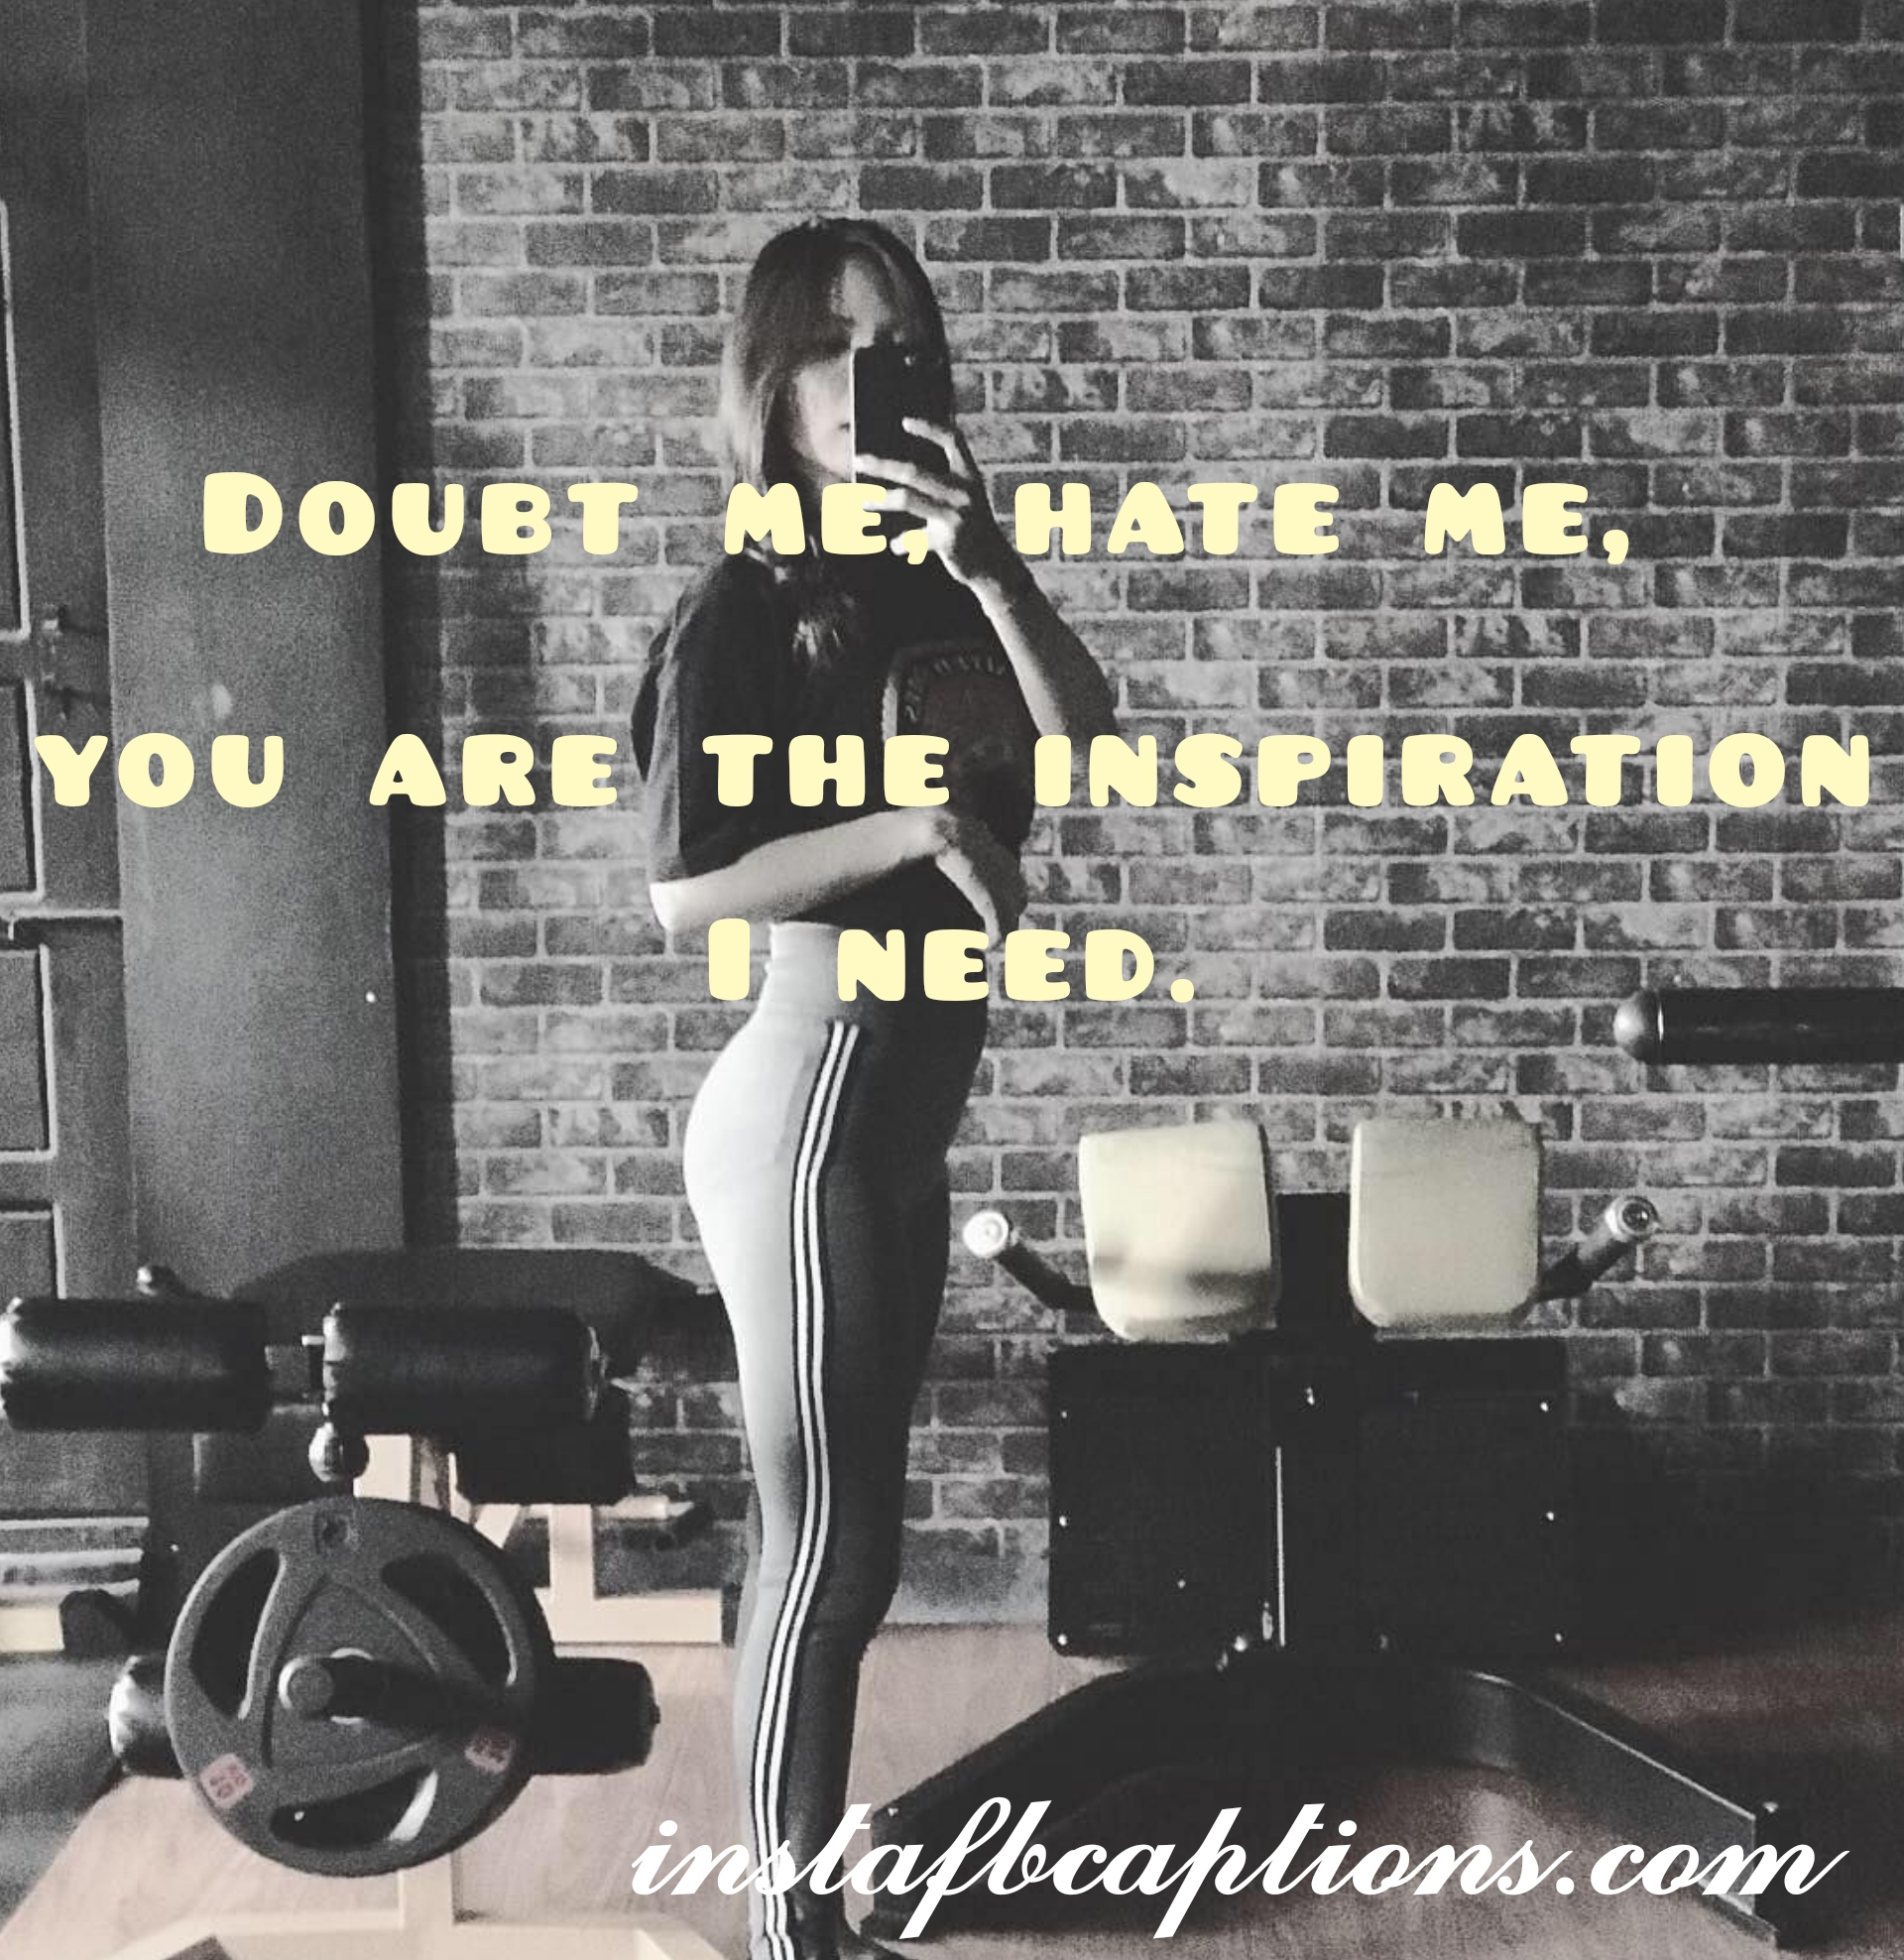 Doubt Me, Hate Me, You Are The Inspiration I Need  - Doubt me hate me you are the inspiration i need - Fitness Instagram caption||(Gym Goals Home Workout)